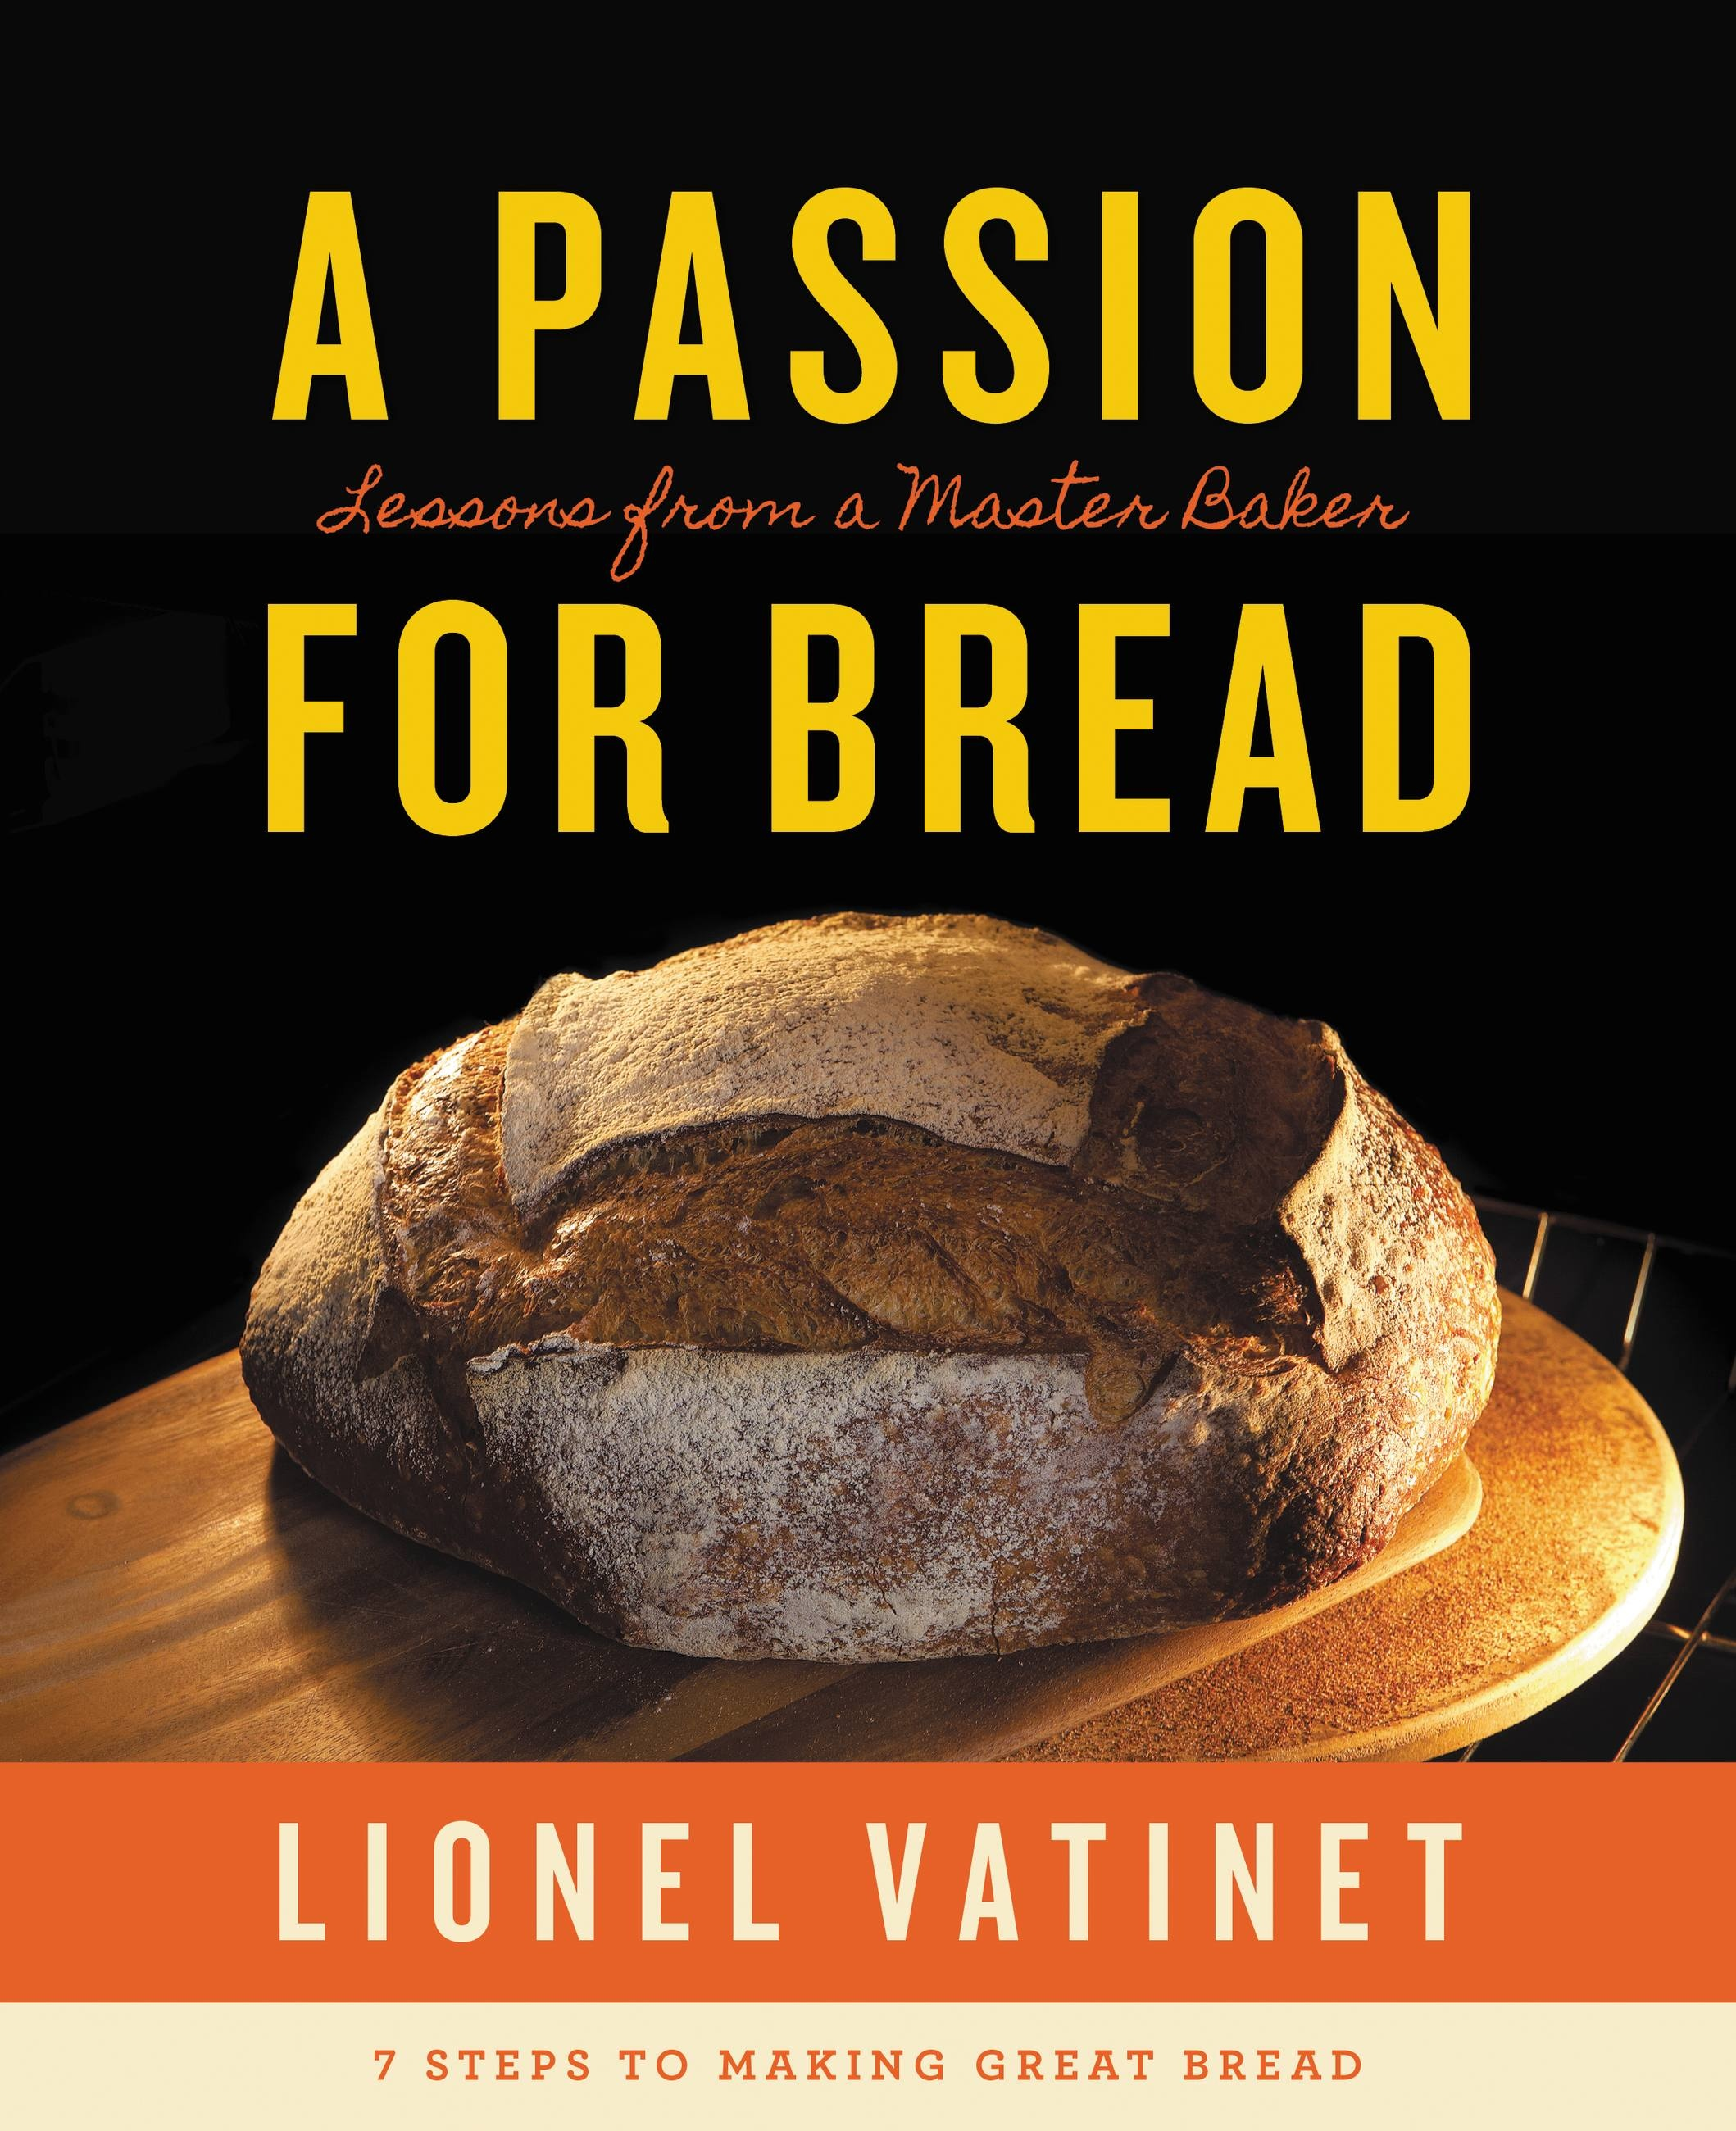 A Passion For a passion for bread